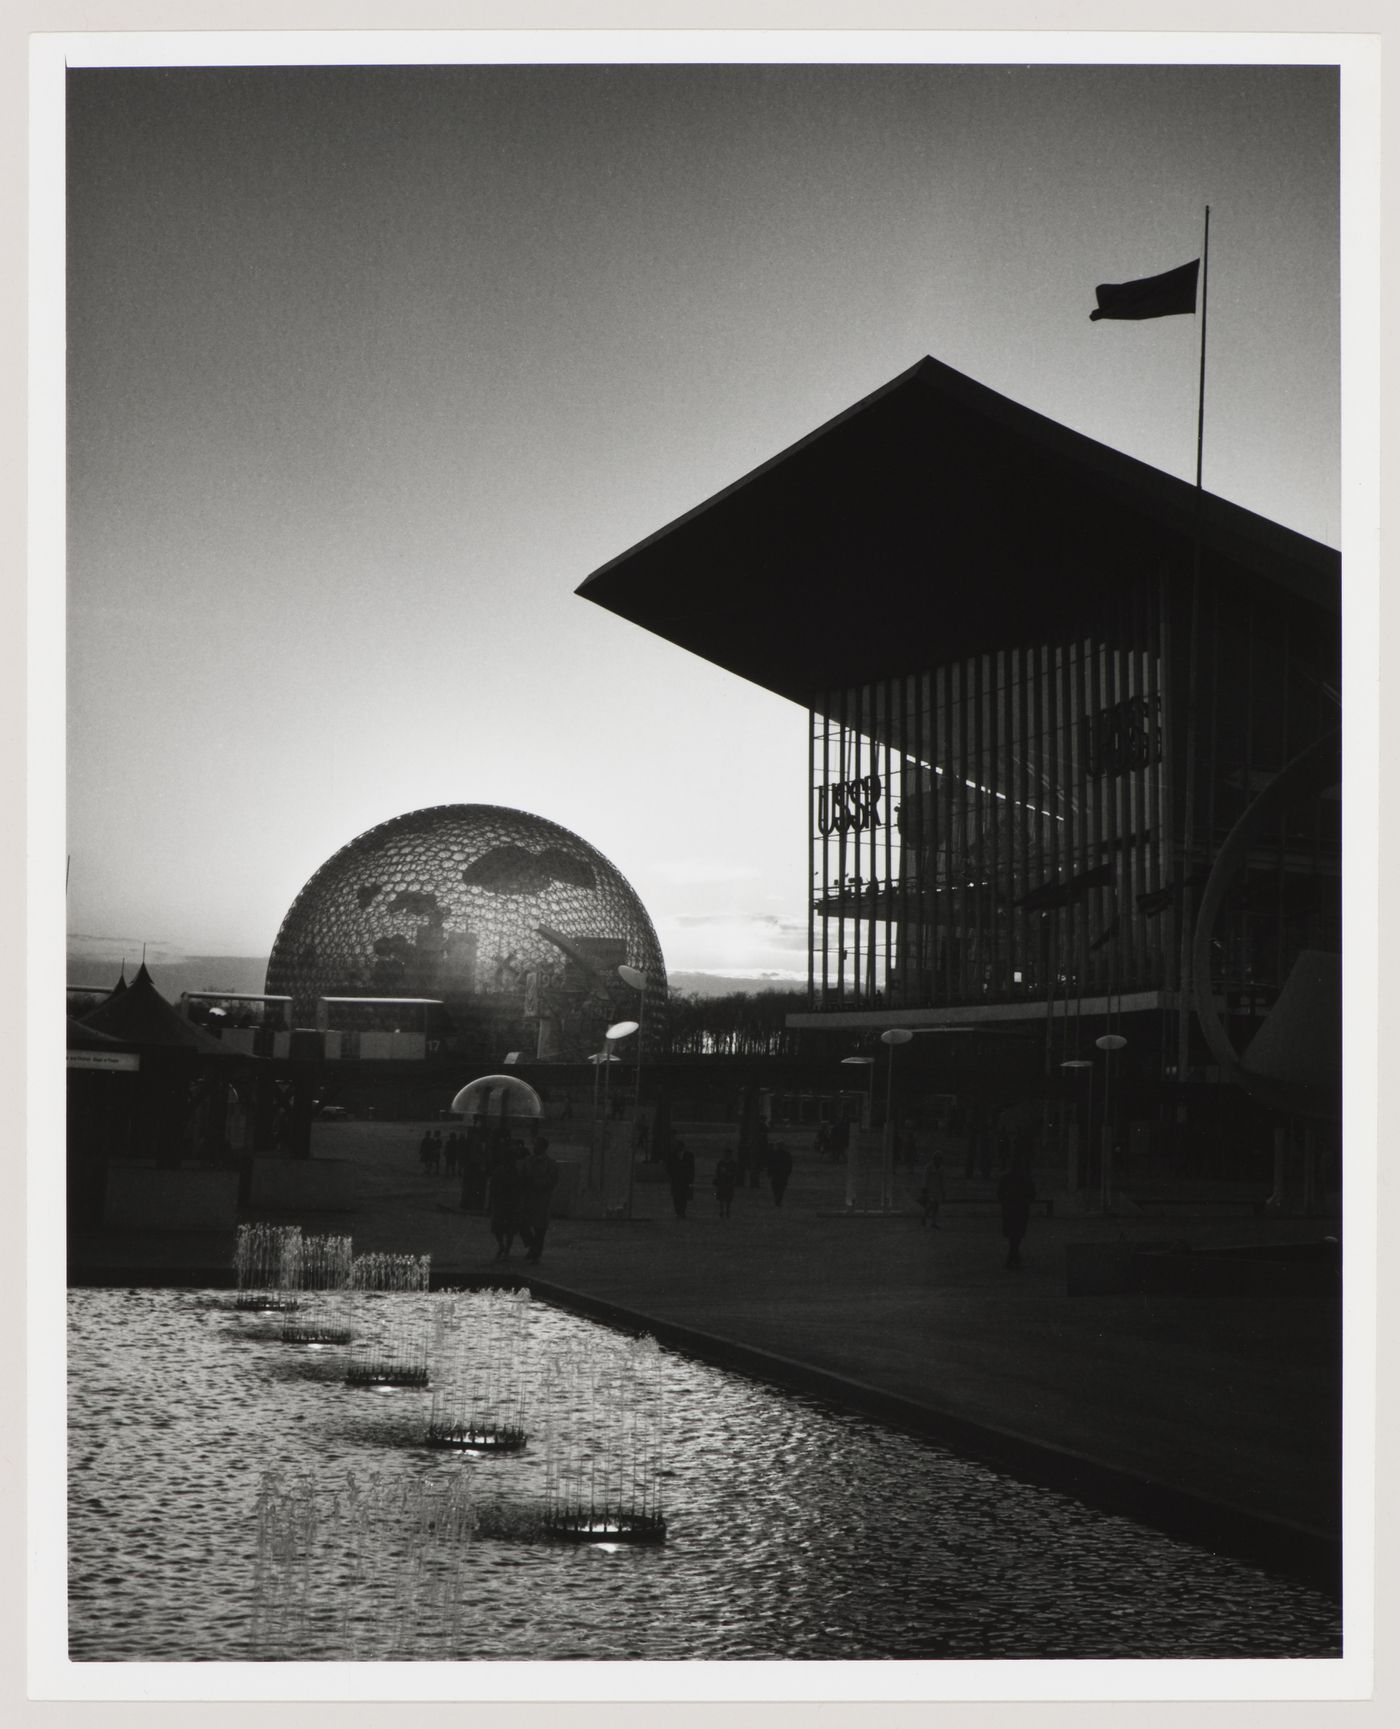 Sunset view of the Pavilions of the United States and of the Soviet Union, Expo 67, Montréal, Québec